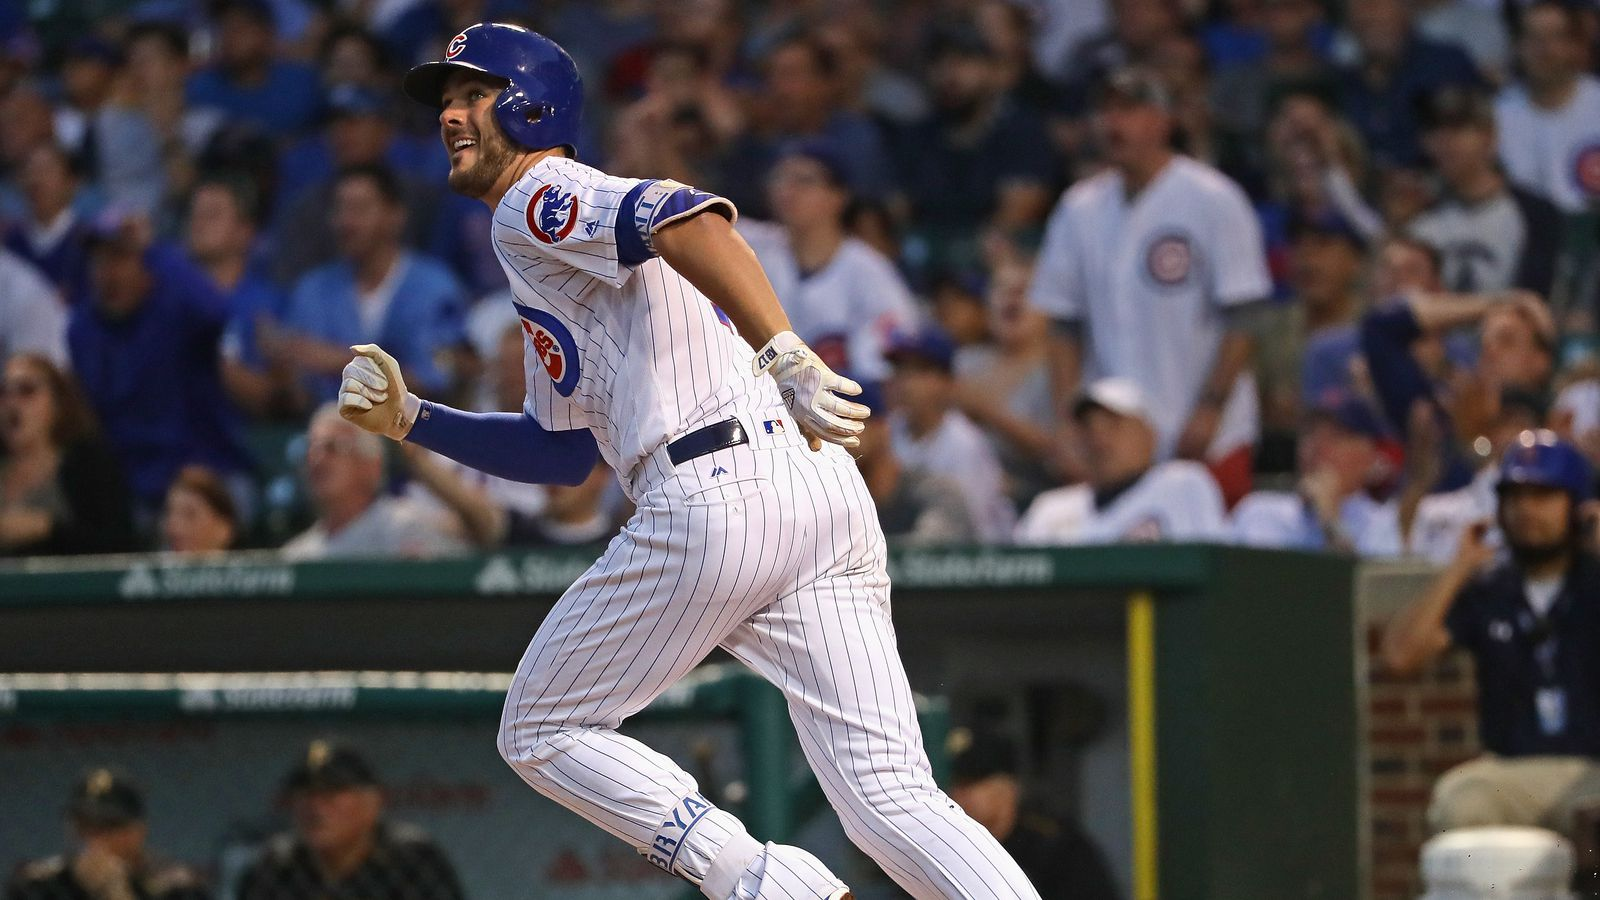 Cubs 6, Pirates 5: Sweep! - Bleed Cubbie Blue